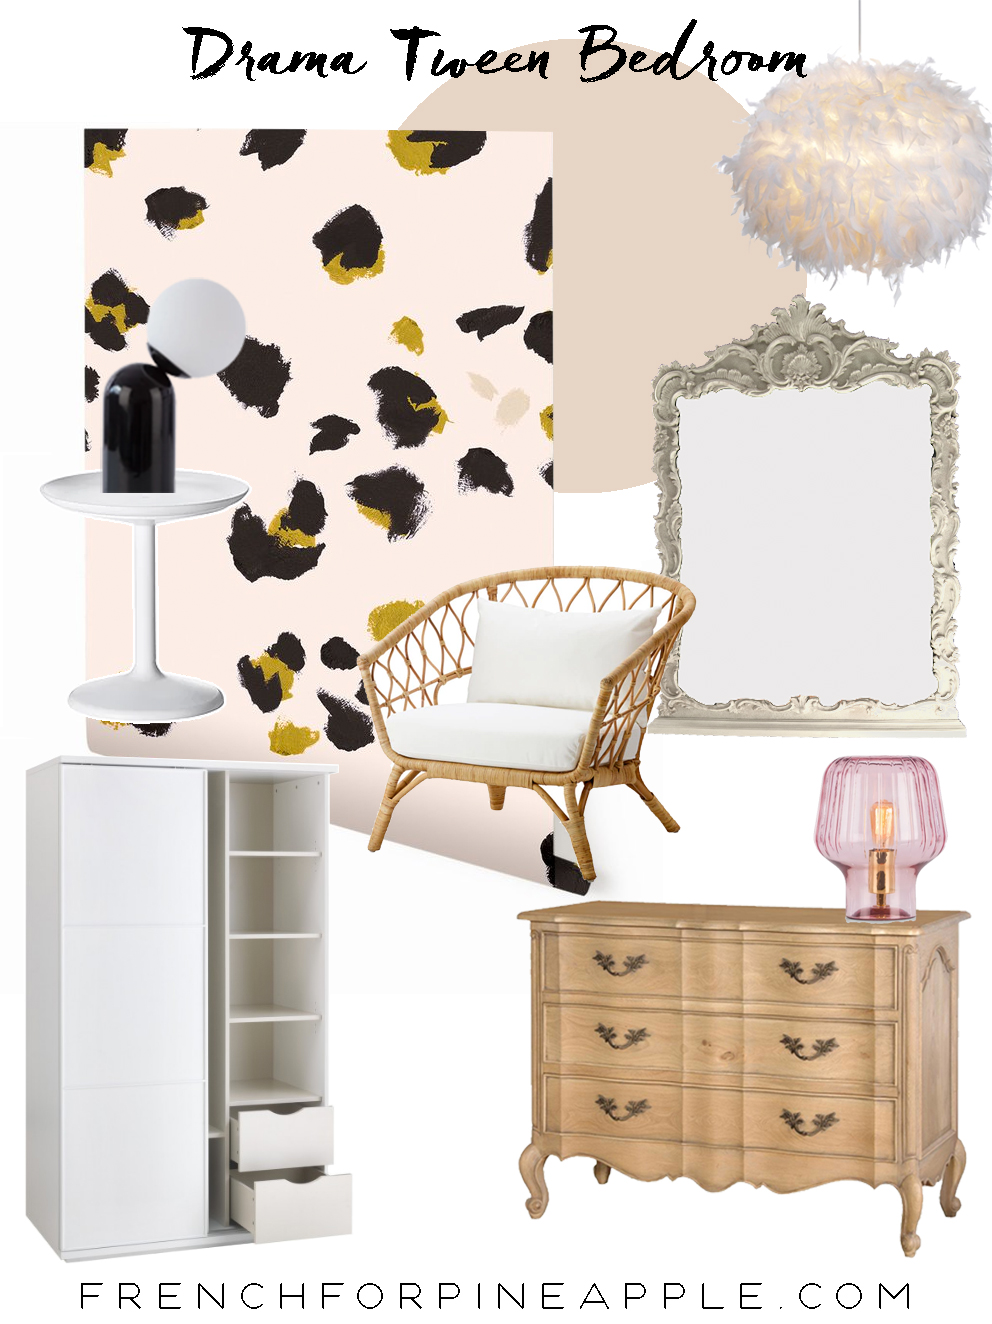 French For Pineapple - Drama Tween Bedroom Makeover - Moodboard